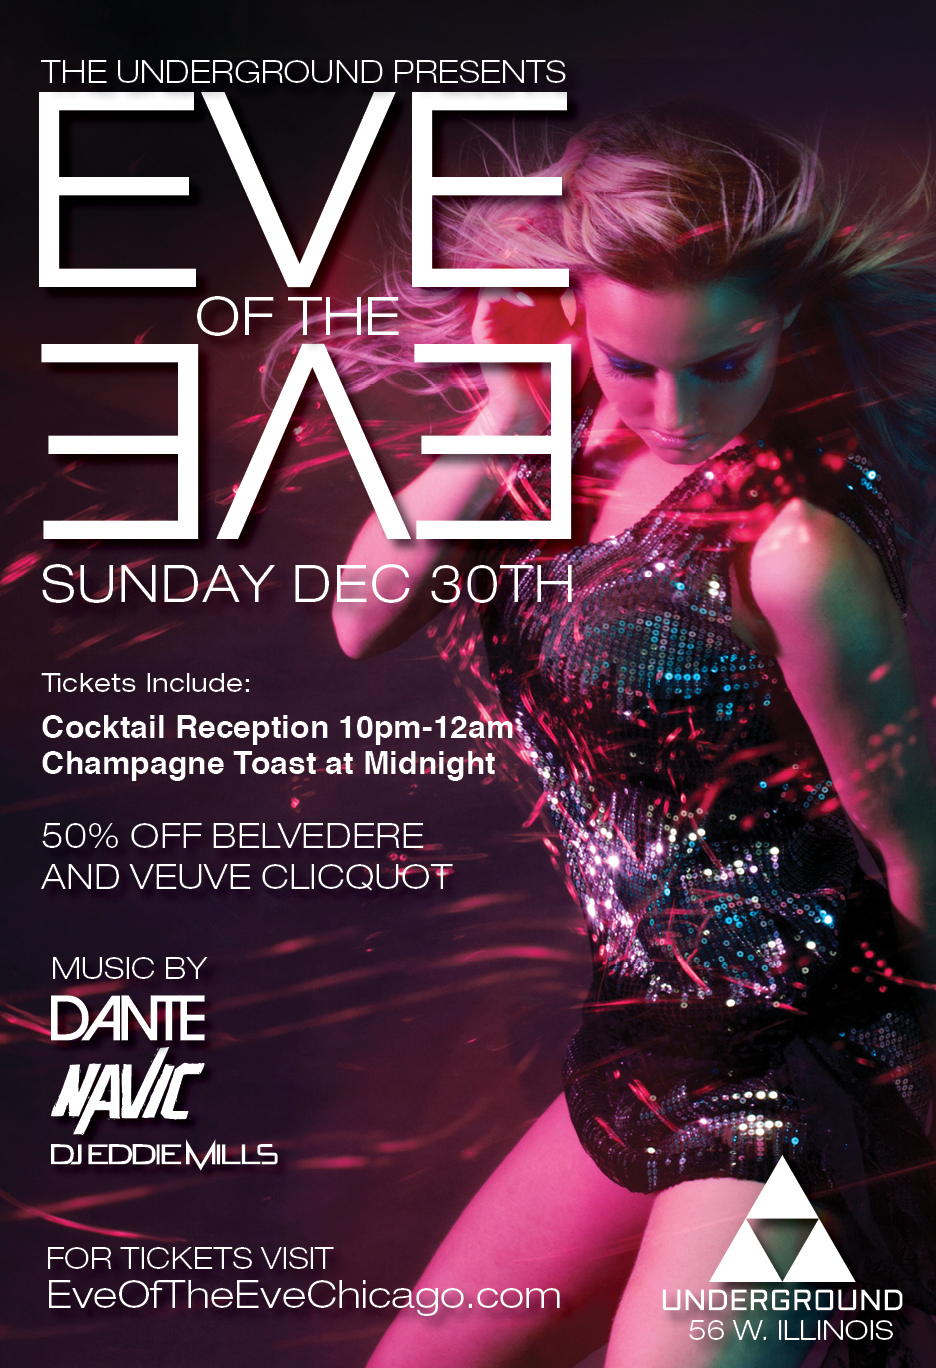 Underground Eve of the Eve Party - Tickets Include Admission, Express Entry Before 11:30pm, a VIP Cocktail Reception From 10pm-12am, A Champagne Toast At Midnight, Live Performances by Chicago's Best DJs & More!